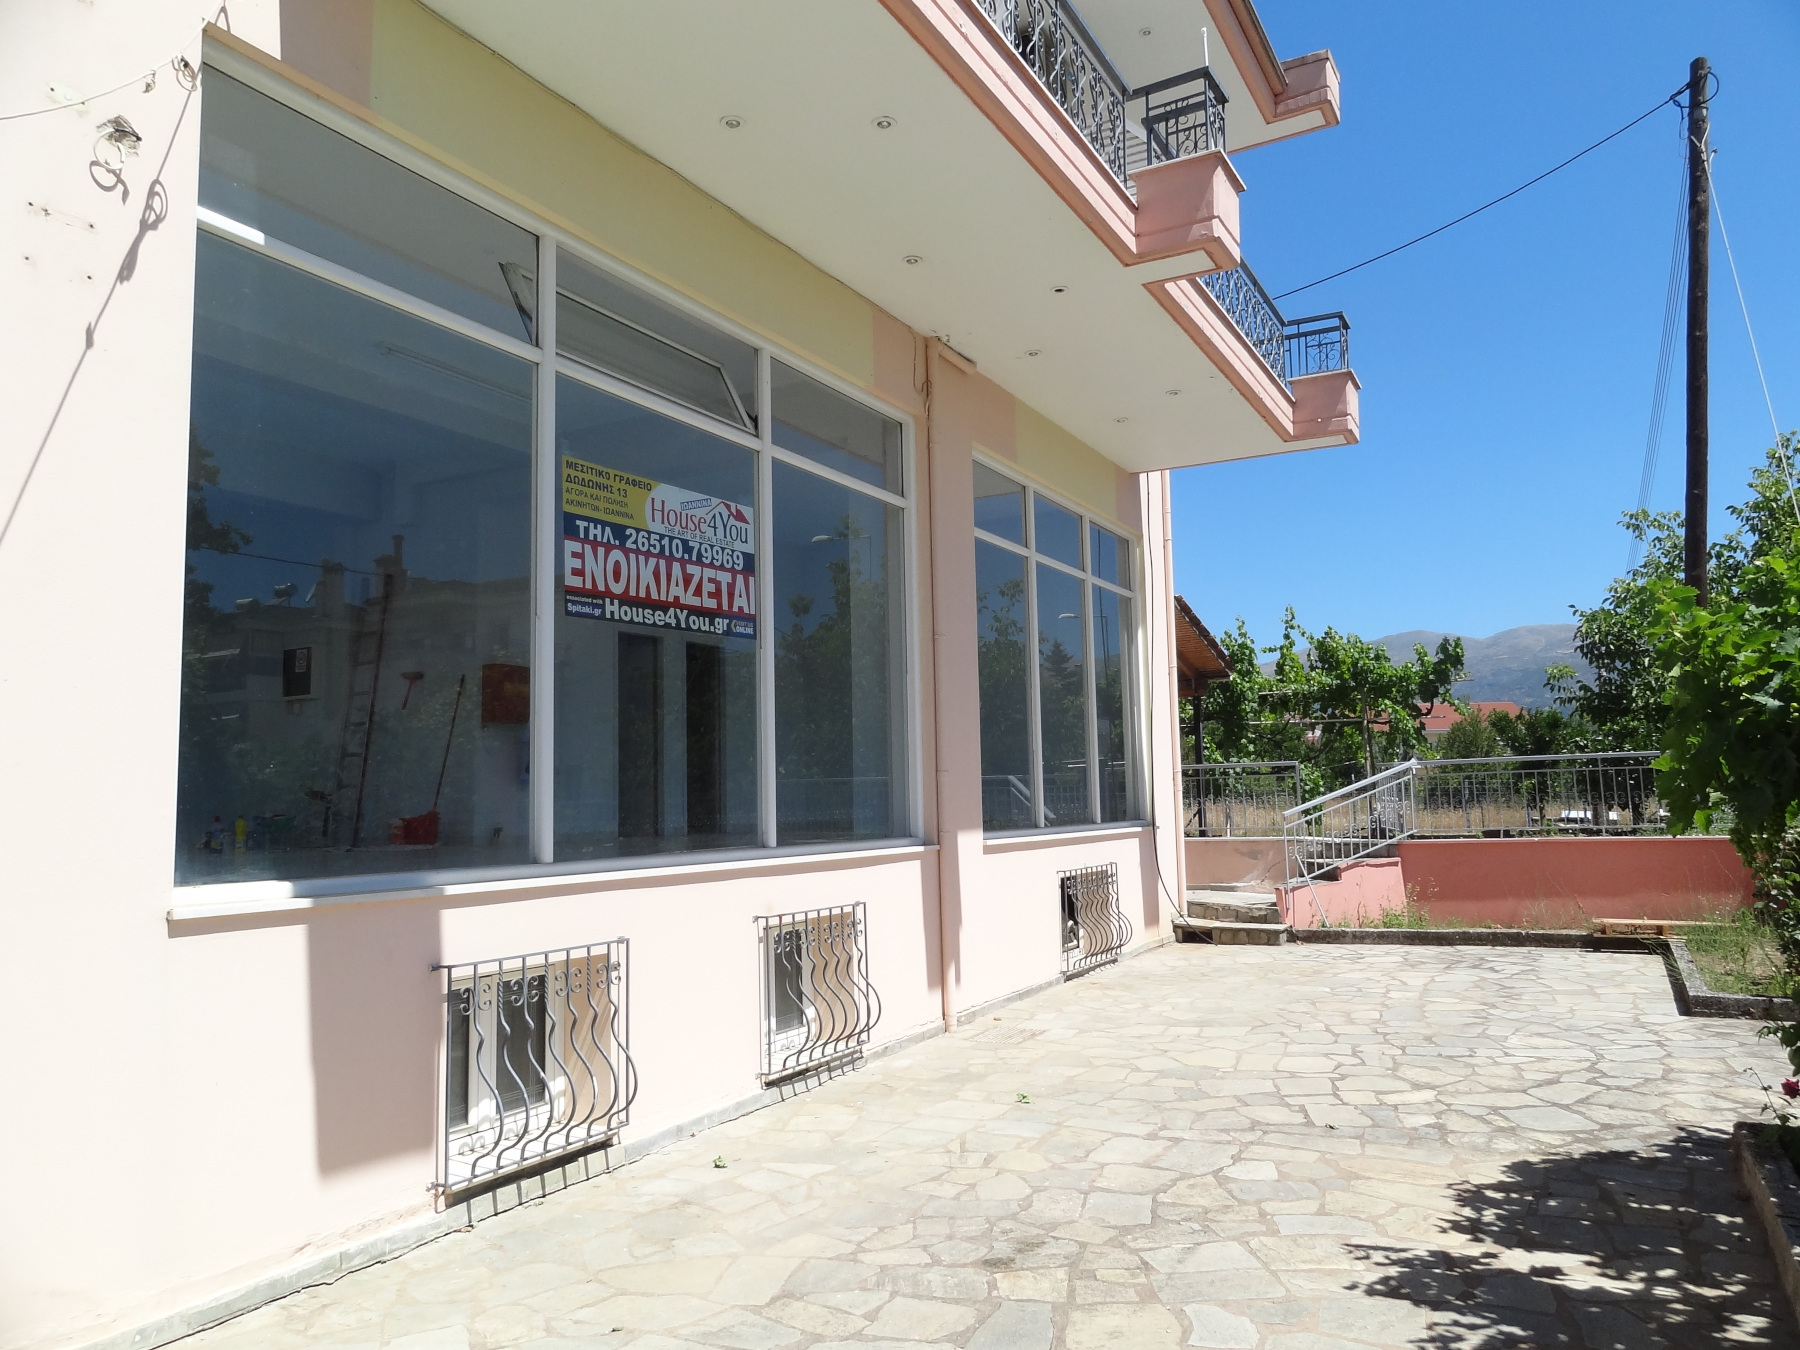 Ground floor commercial space for rent 124 sq.m. on Asimakopoulou in Kato Neochoropoulo in Ioannina